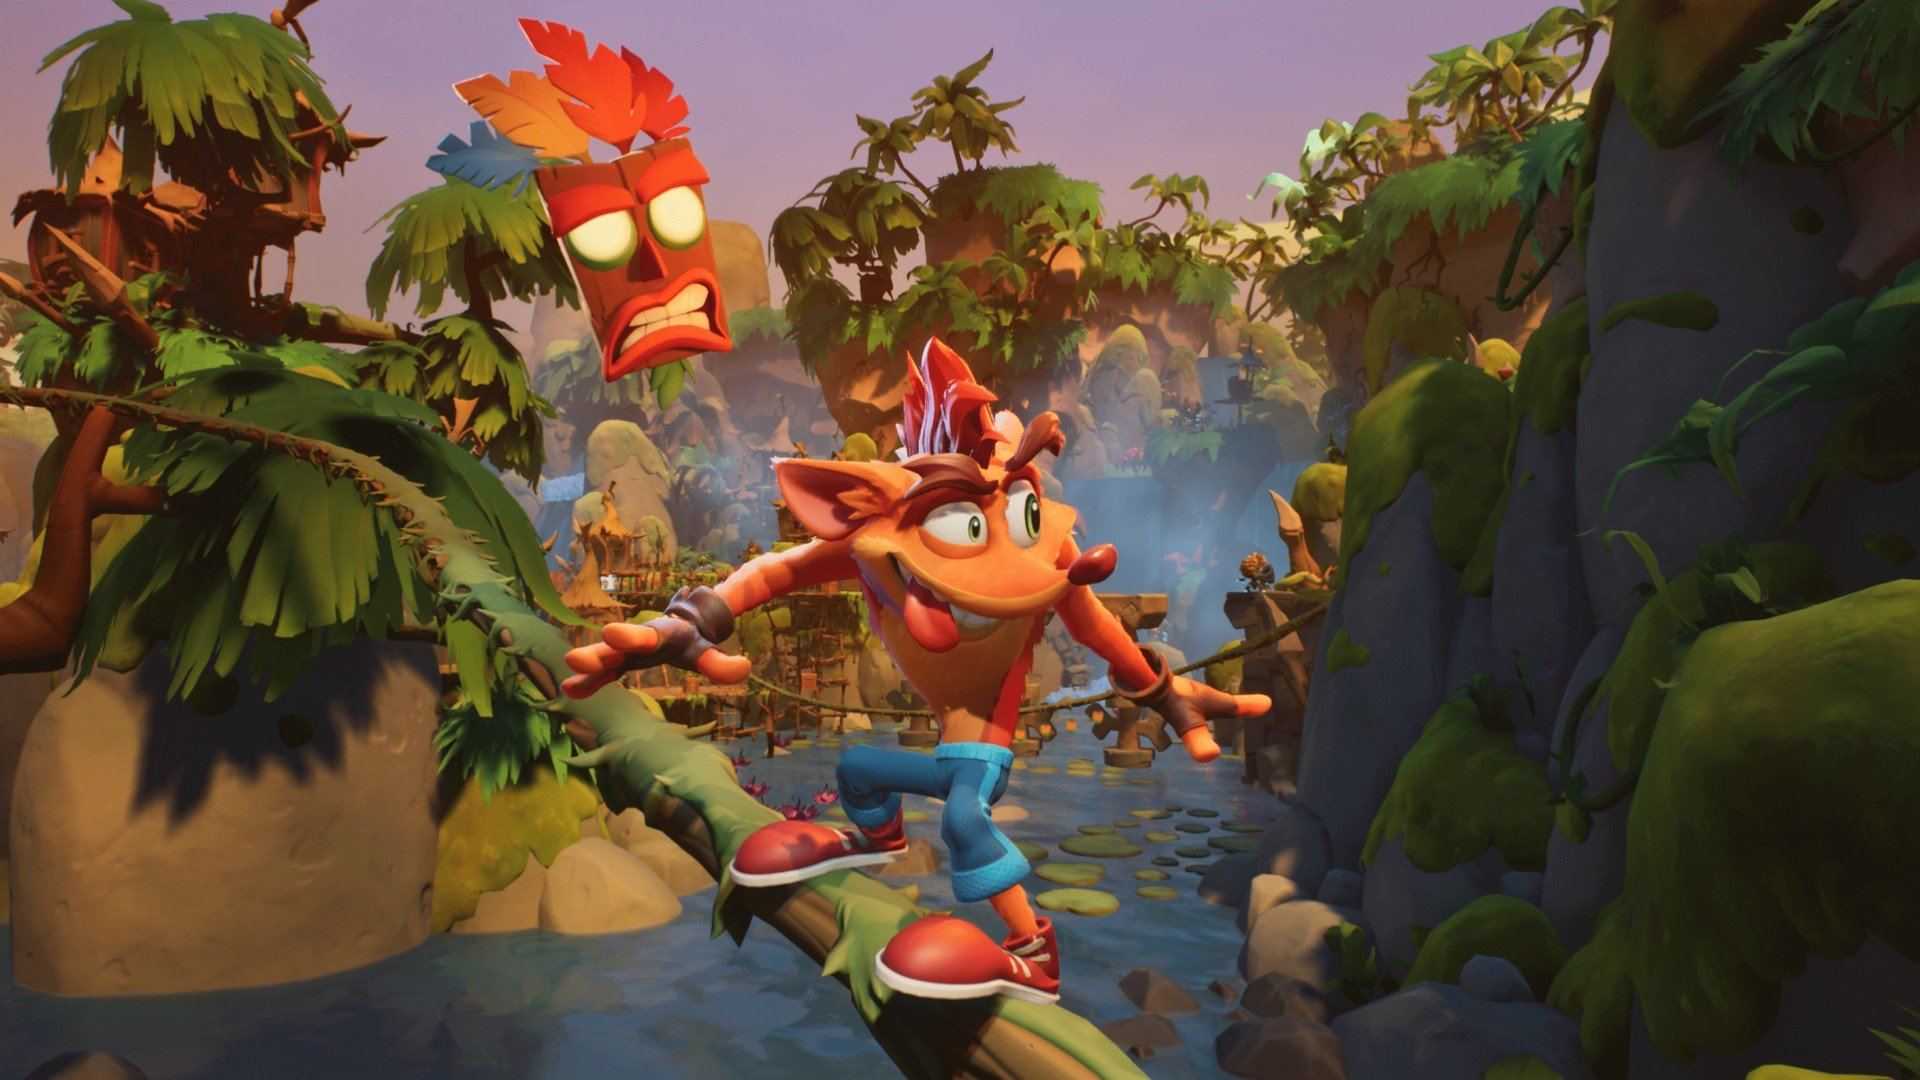 Crash Bandicoot Slide 4 Tips